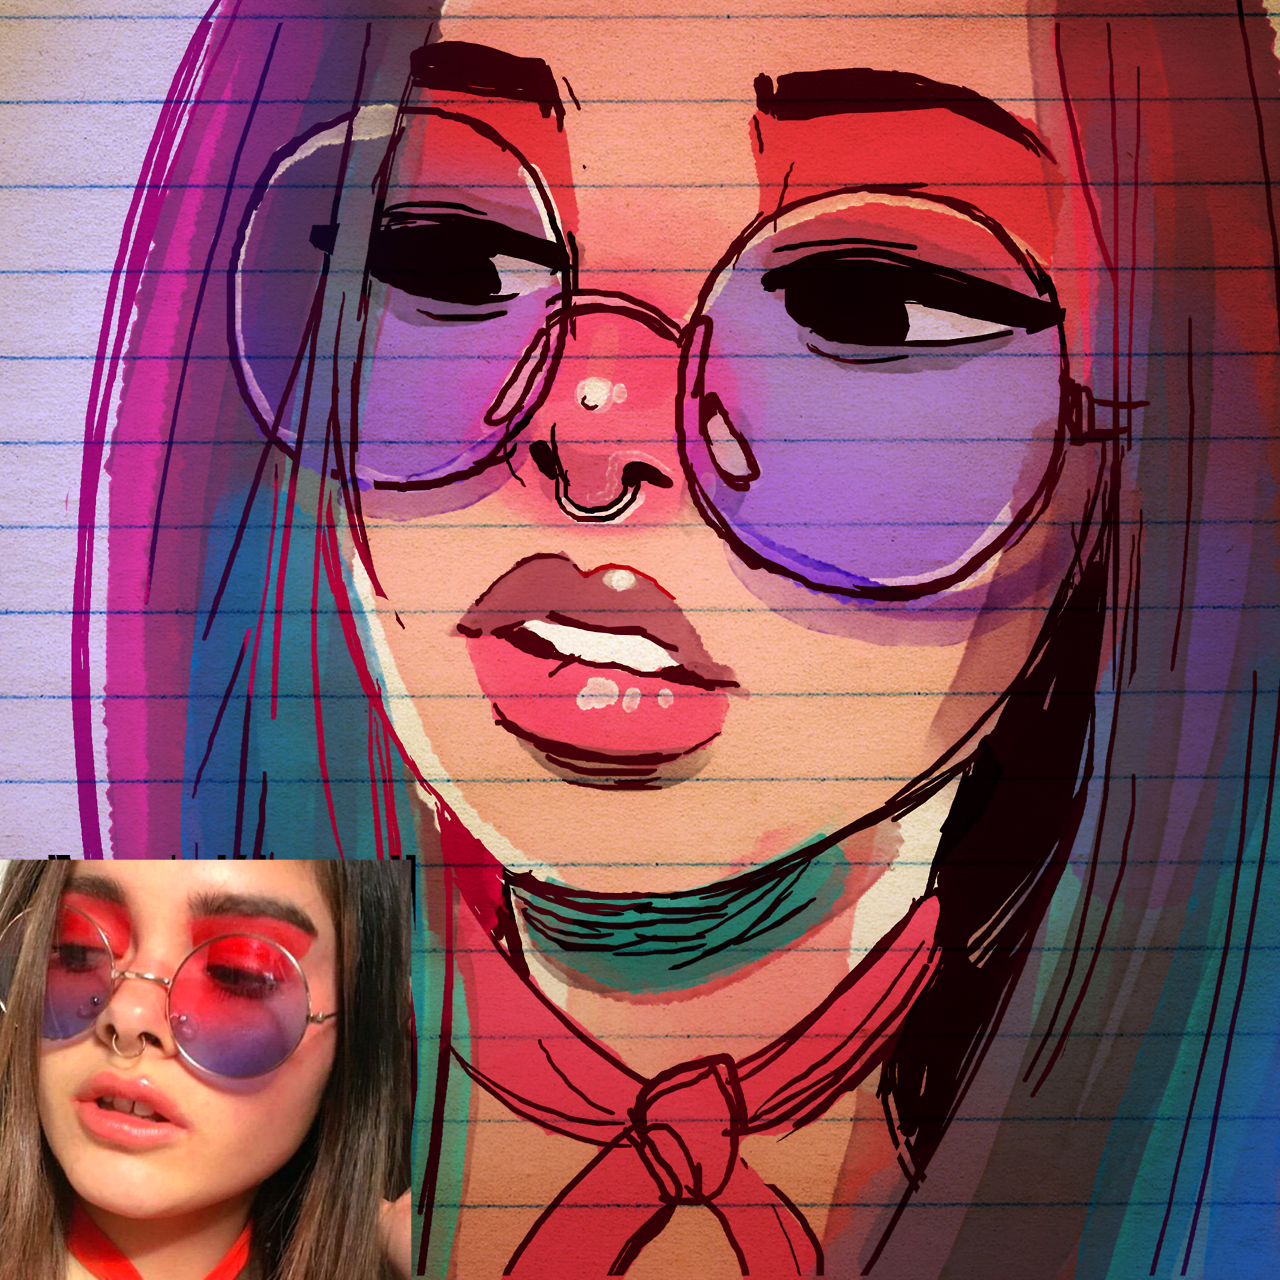 Liked The Color Scheme On This Pic So Thought I D Make A Quick Study Happy Friday Everyone Dibujar Caricaturas Produccion Artistica Dibujos Bonitos